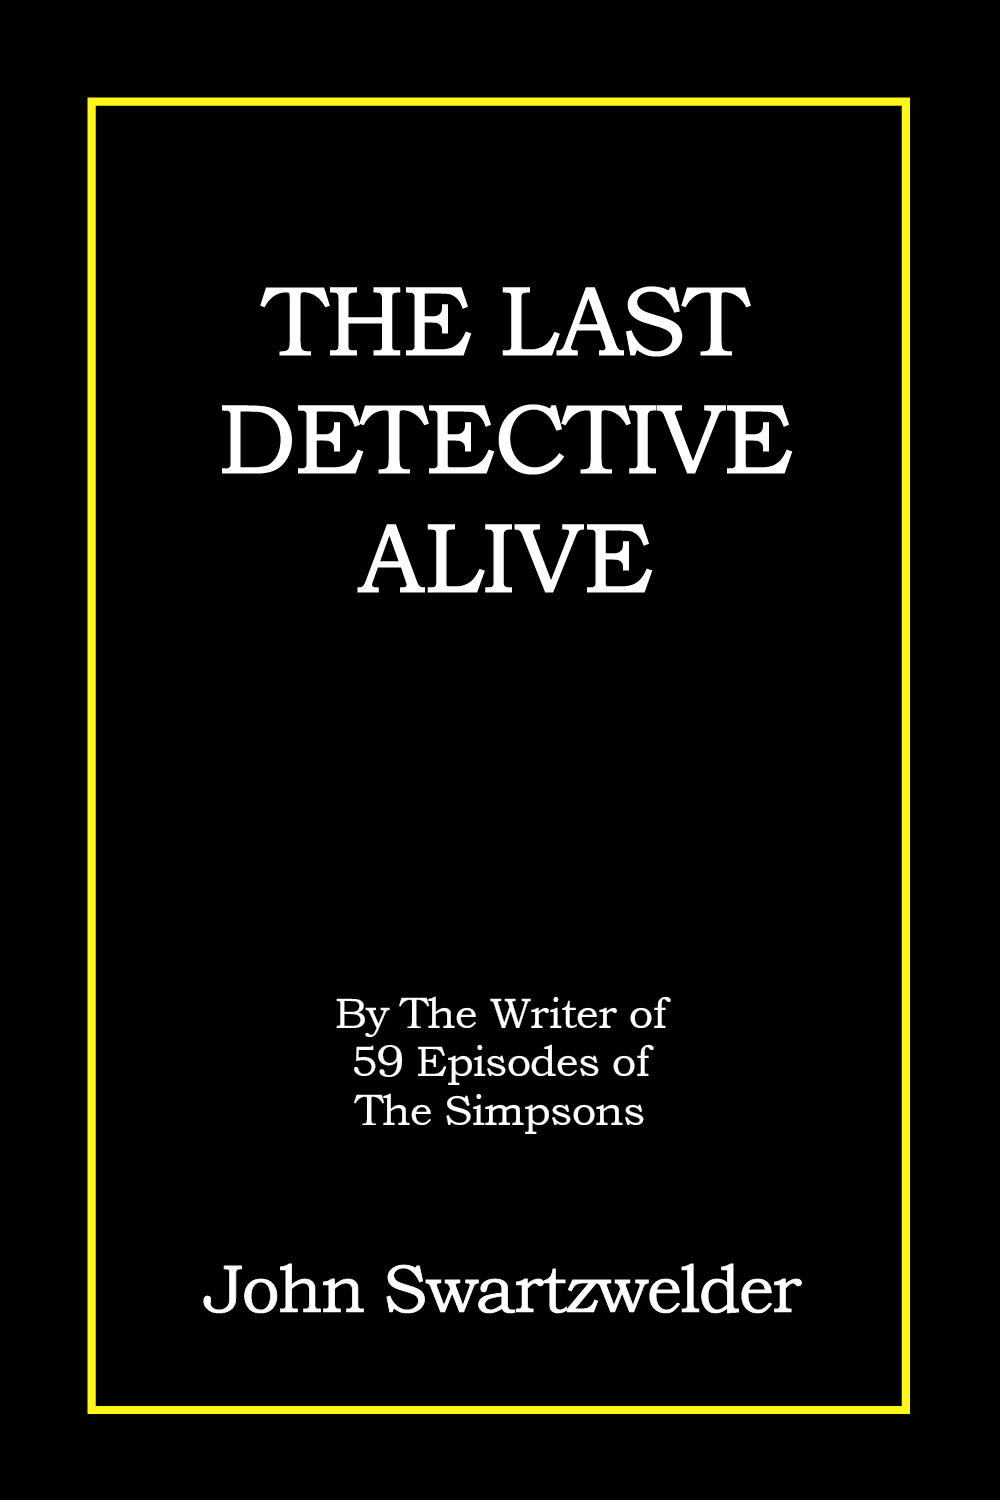 The Last Detective Alive by John Swartzwelder